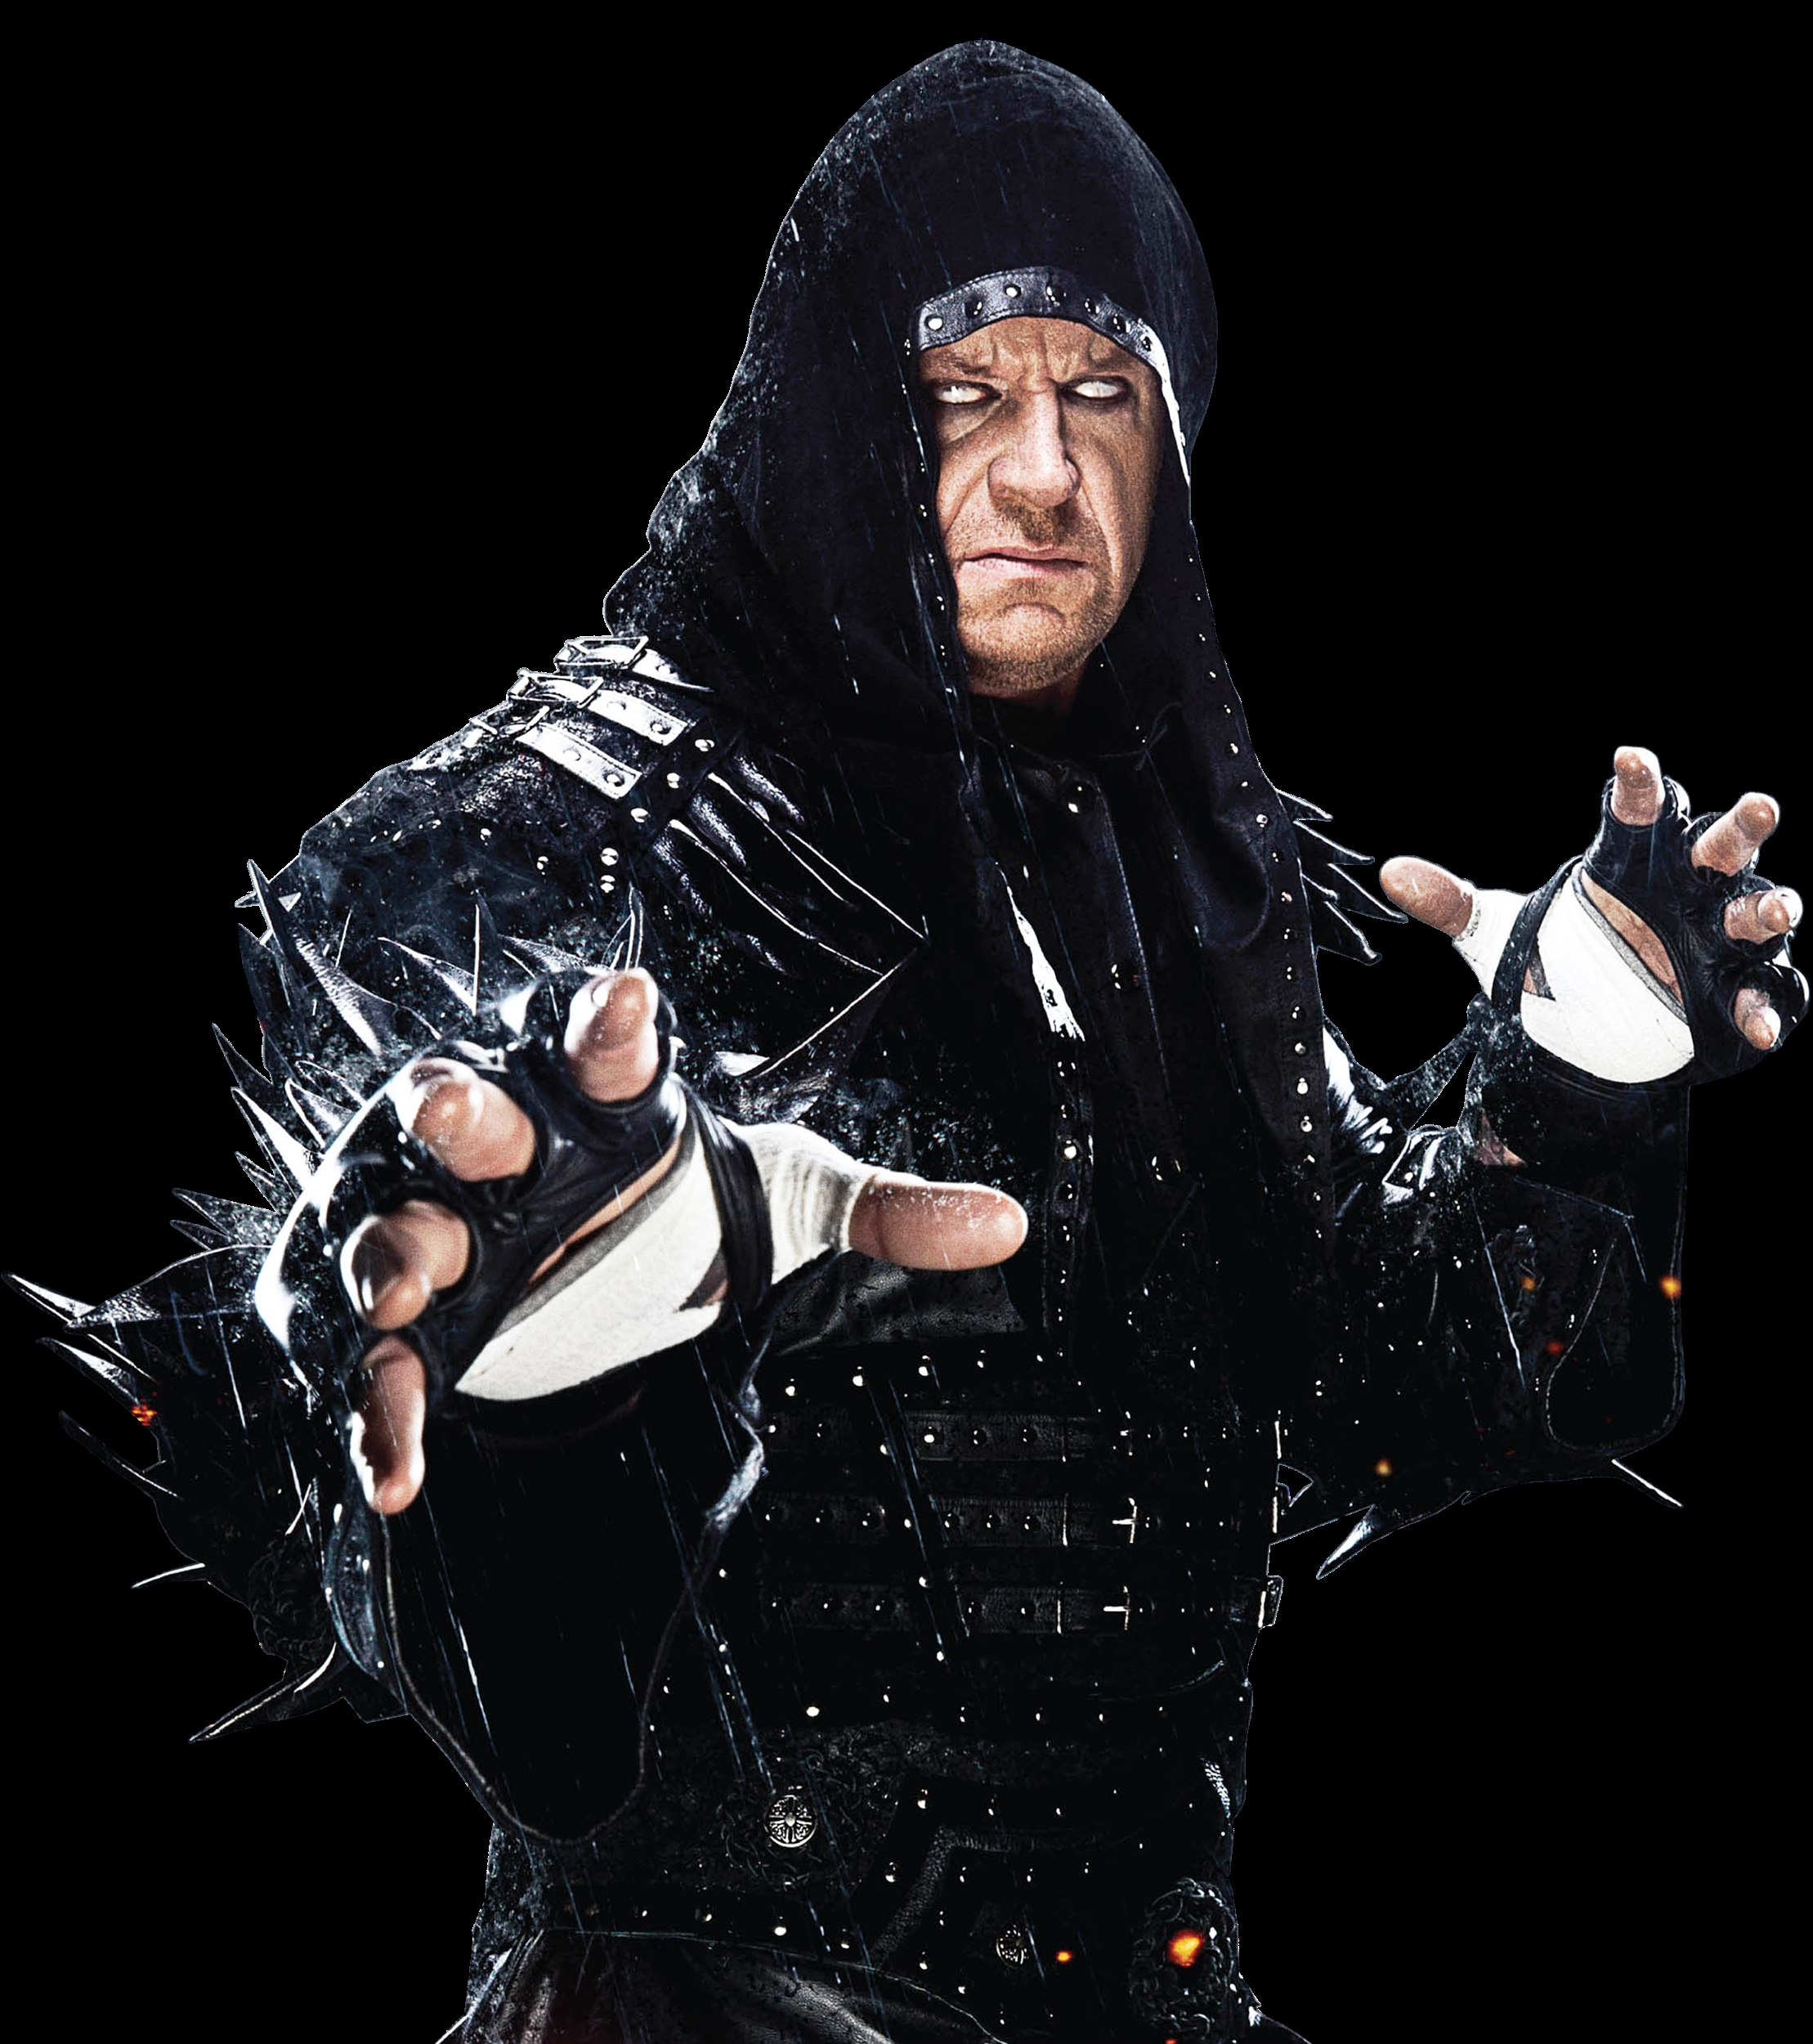 Undertaker and WWE